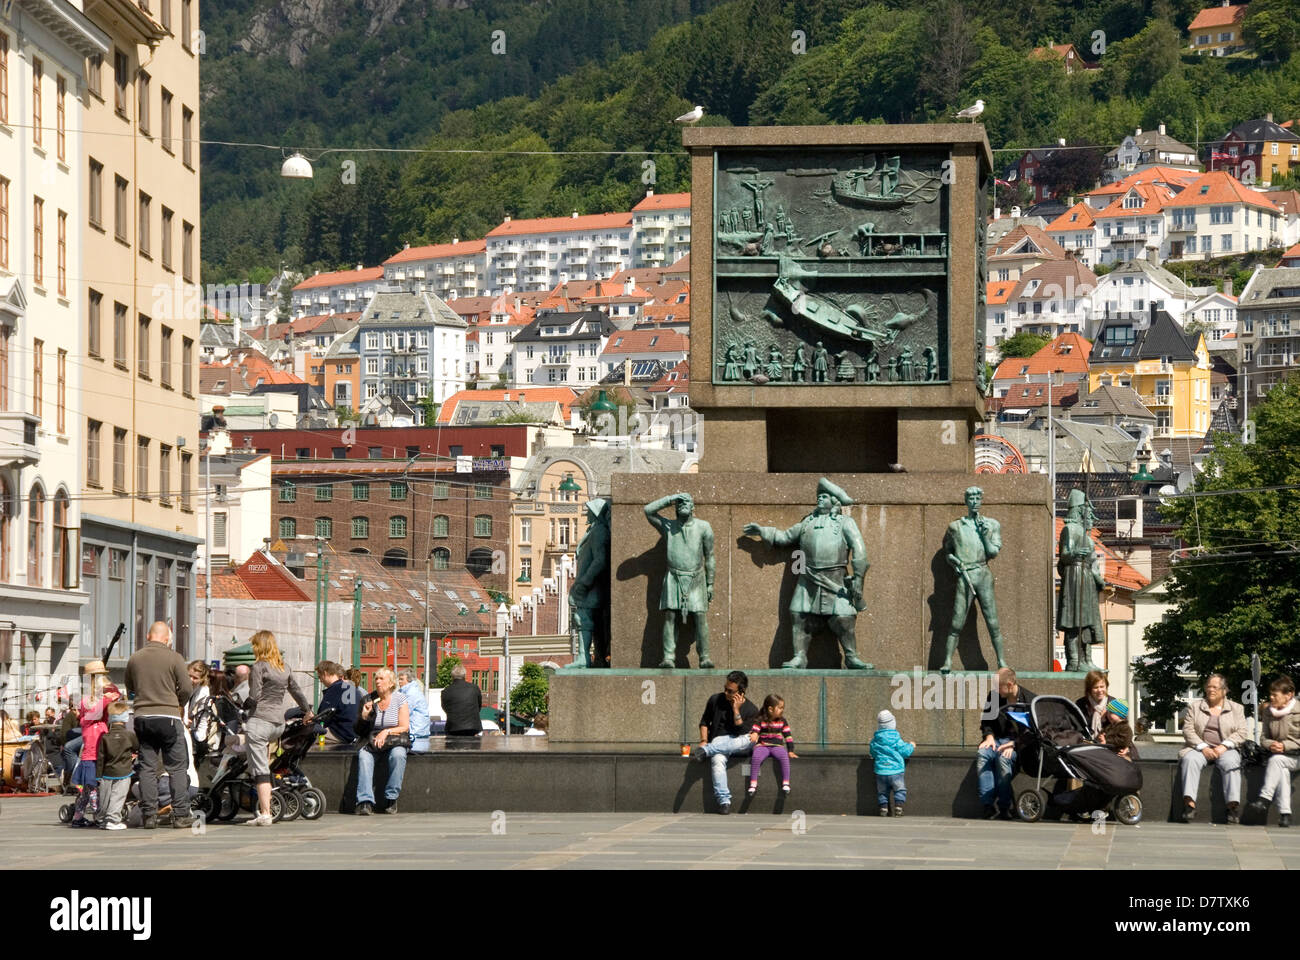 Sailors' Monument, in Torgallmeningen, Bergen, Norway, Scandinavia - Stock Image